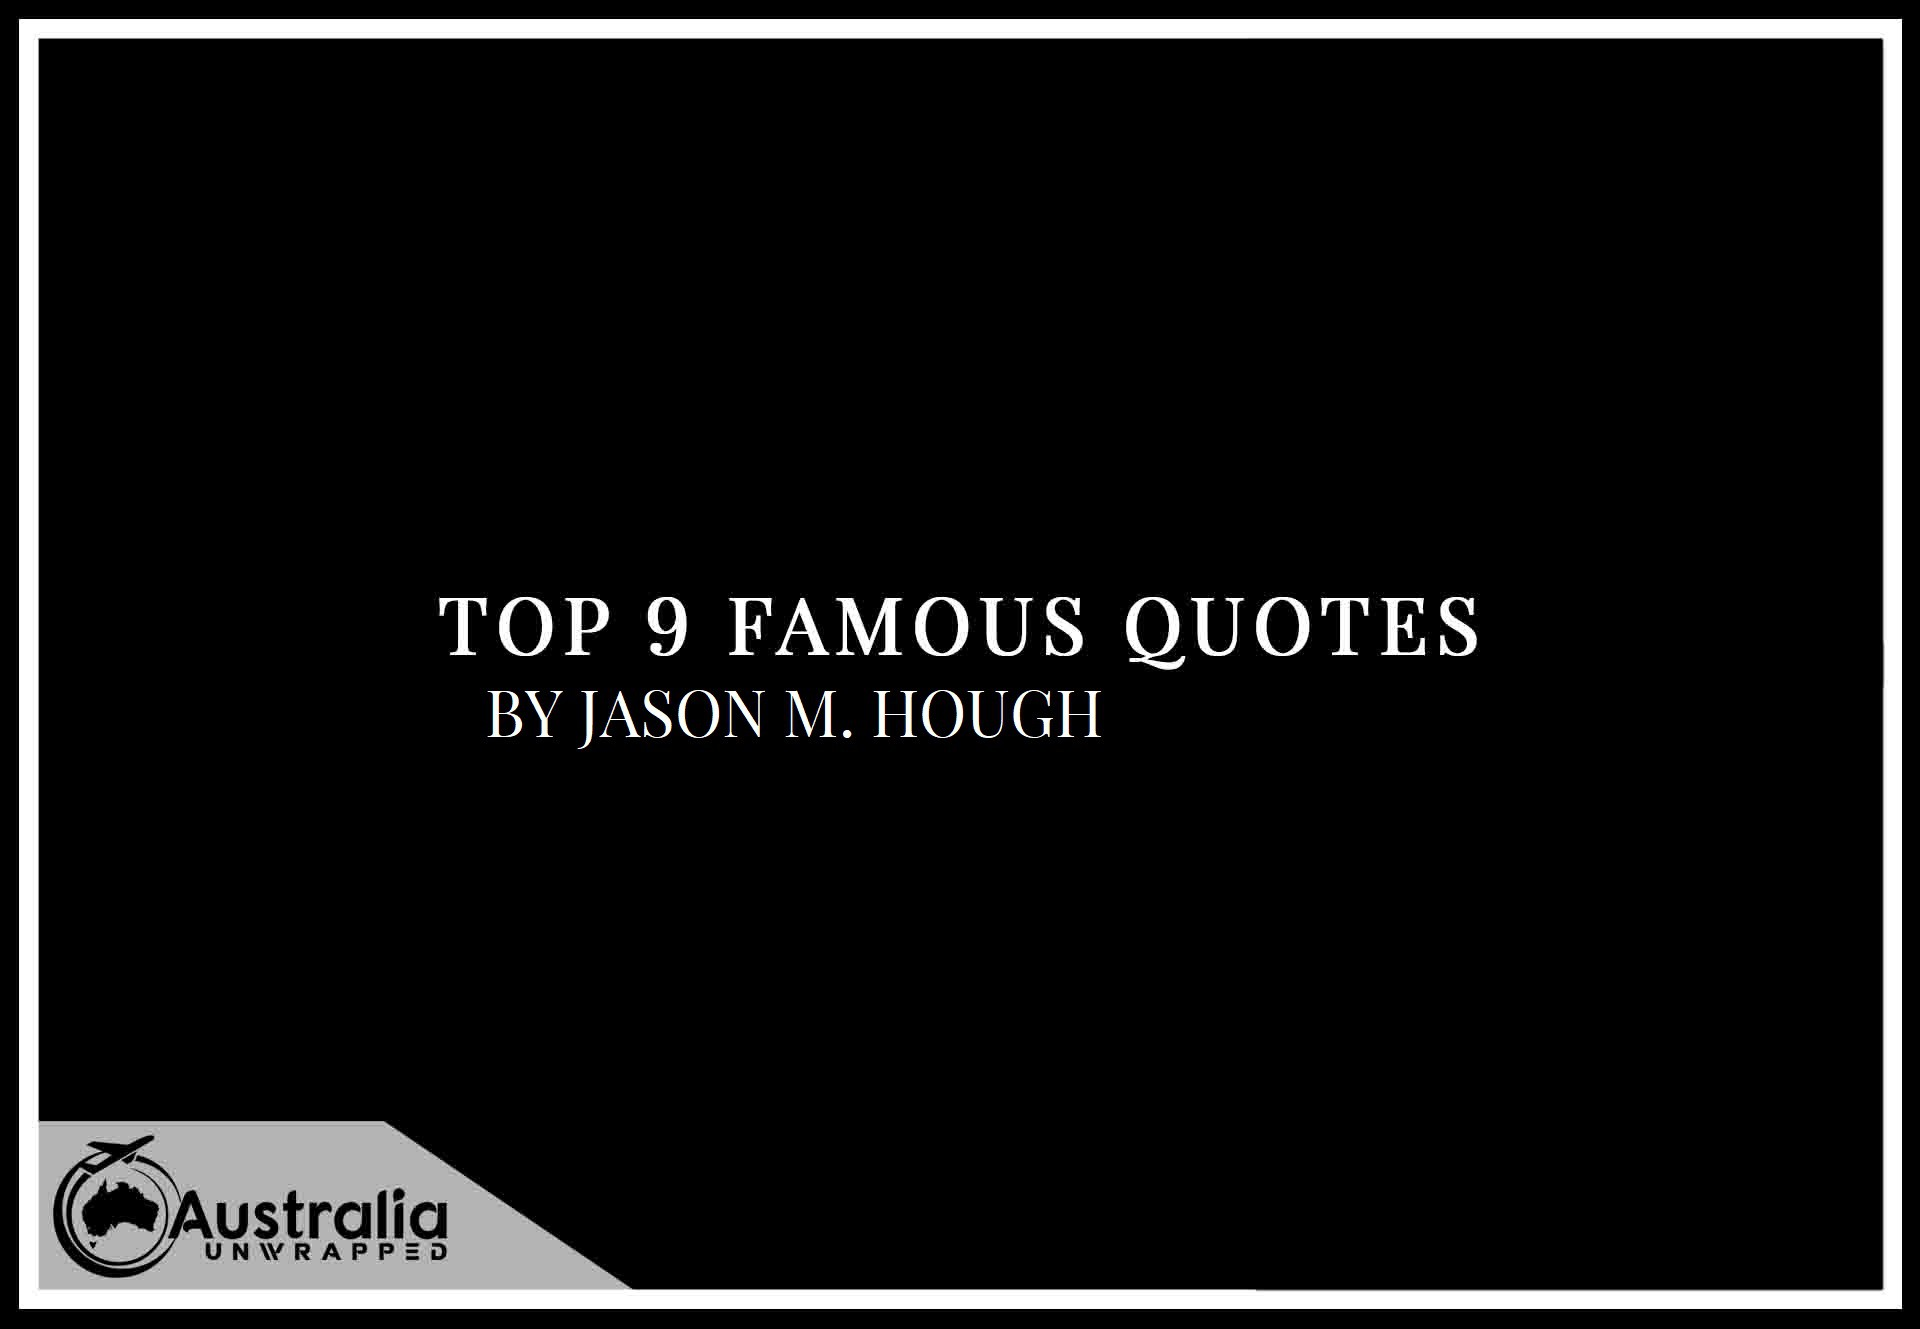 Top 9 Famous Quotes by Author Jason M. Hough